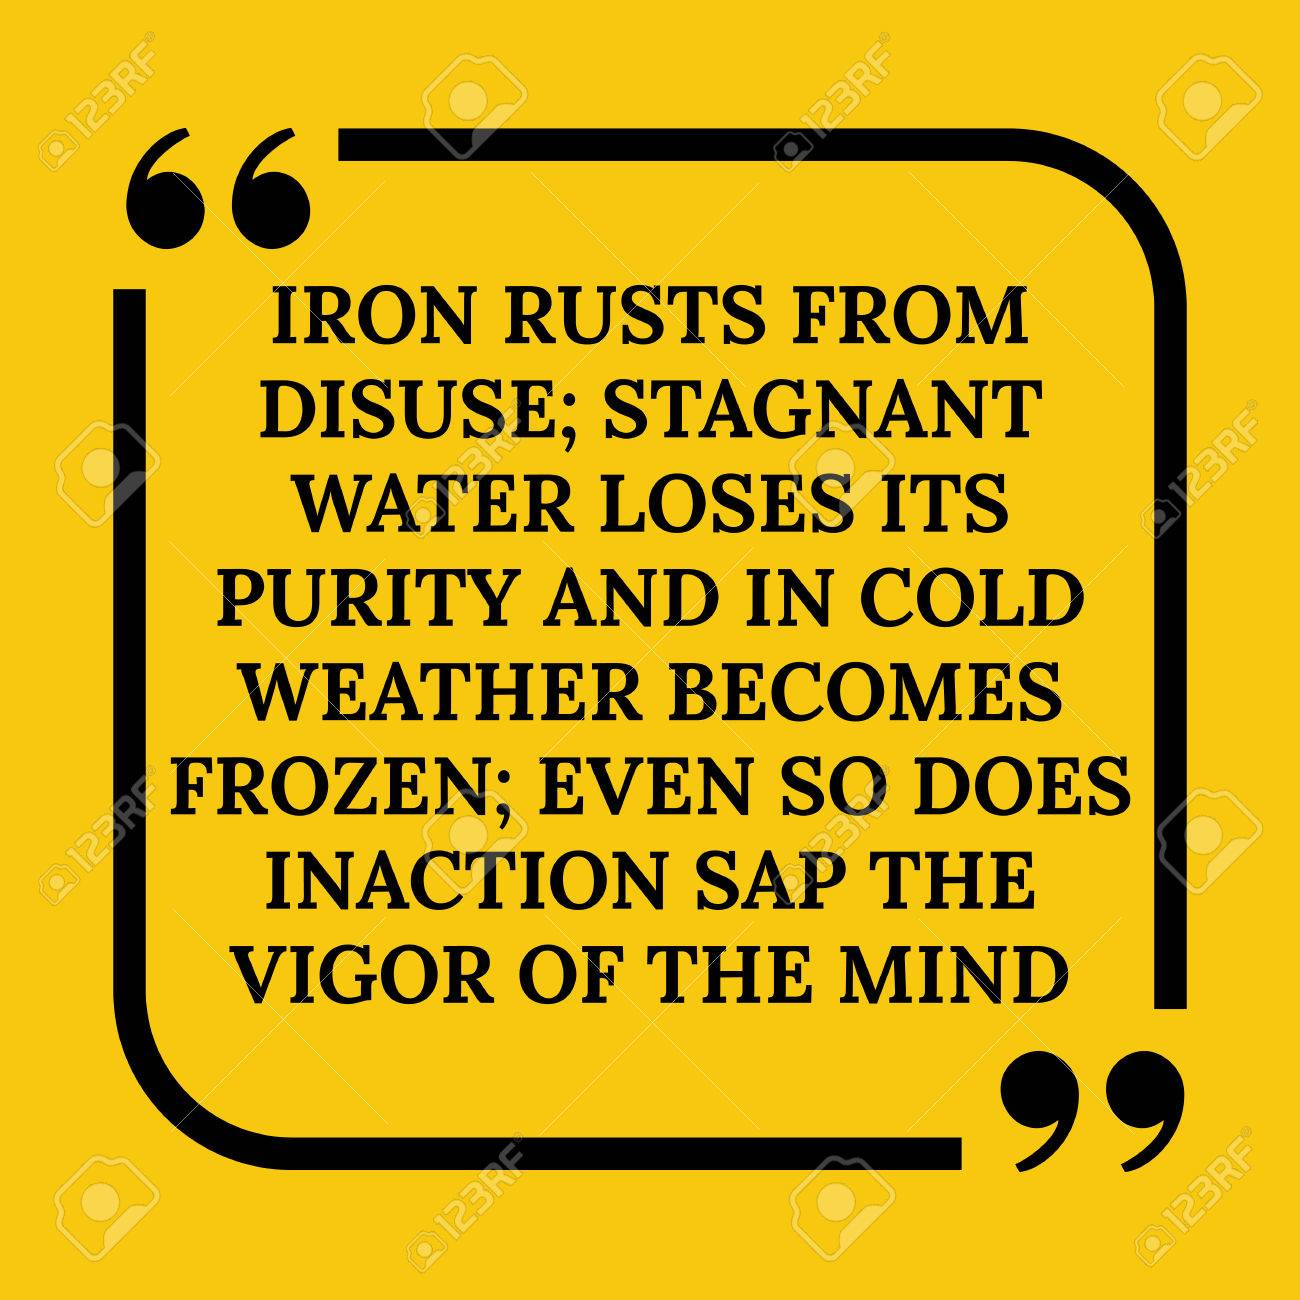 19df7ccb26 Motivational quote. Iron rusts from disuse; stagnant water loses its purity  and in cold